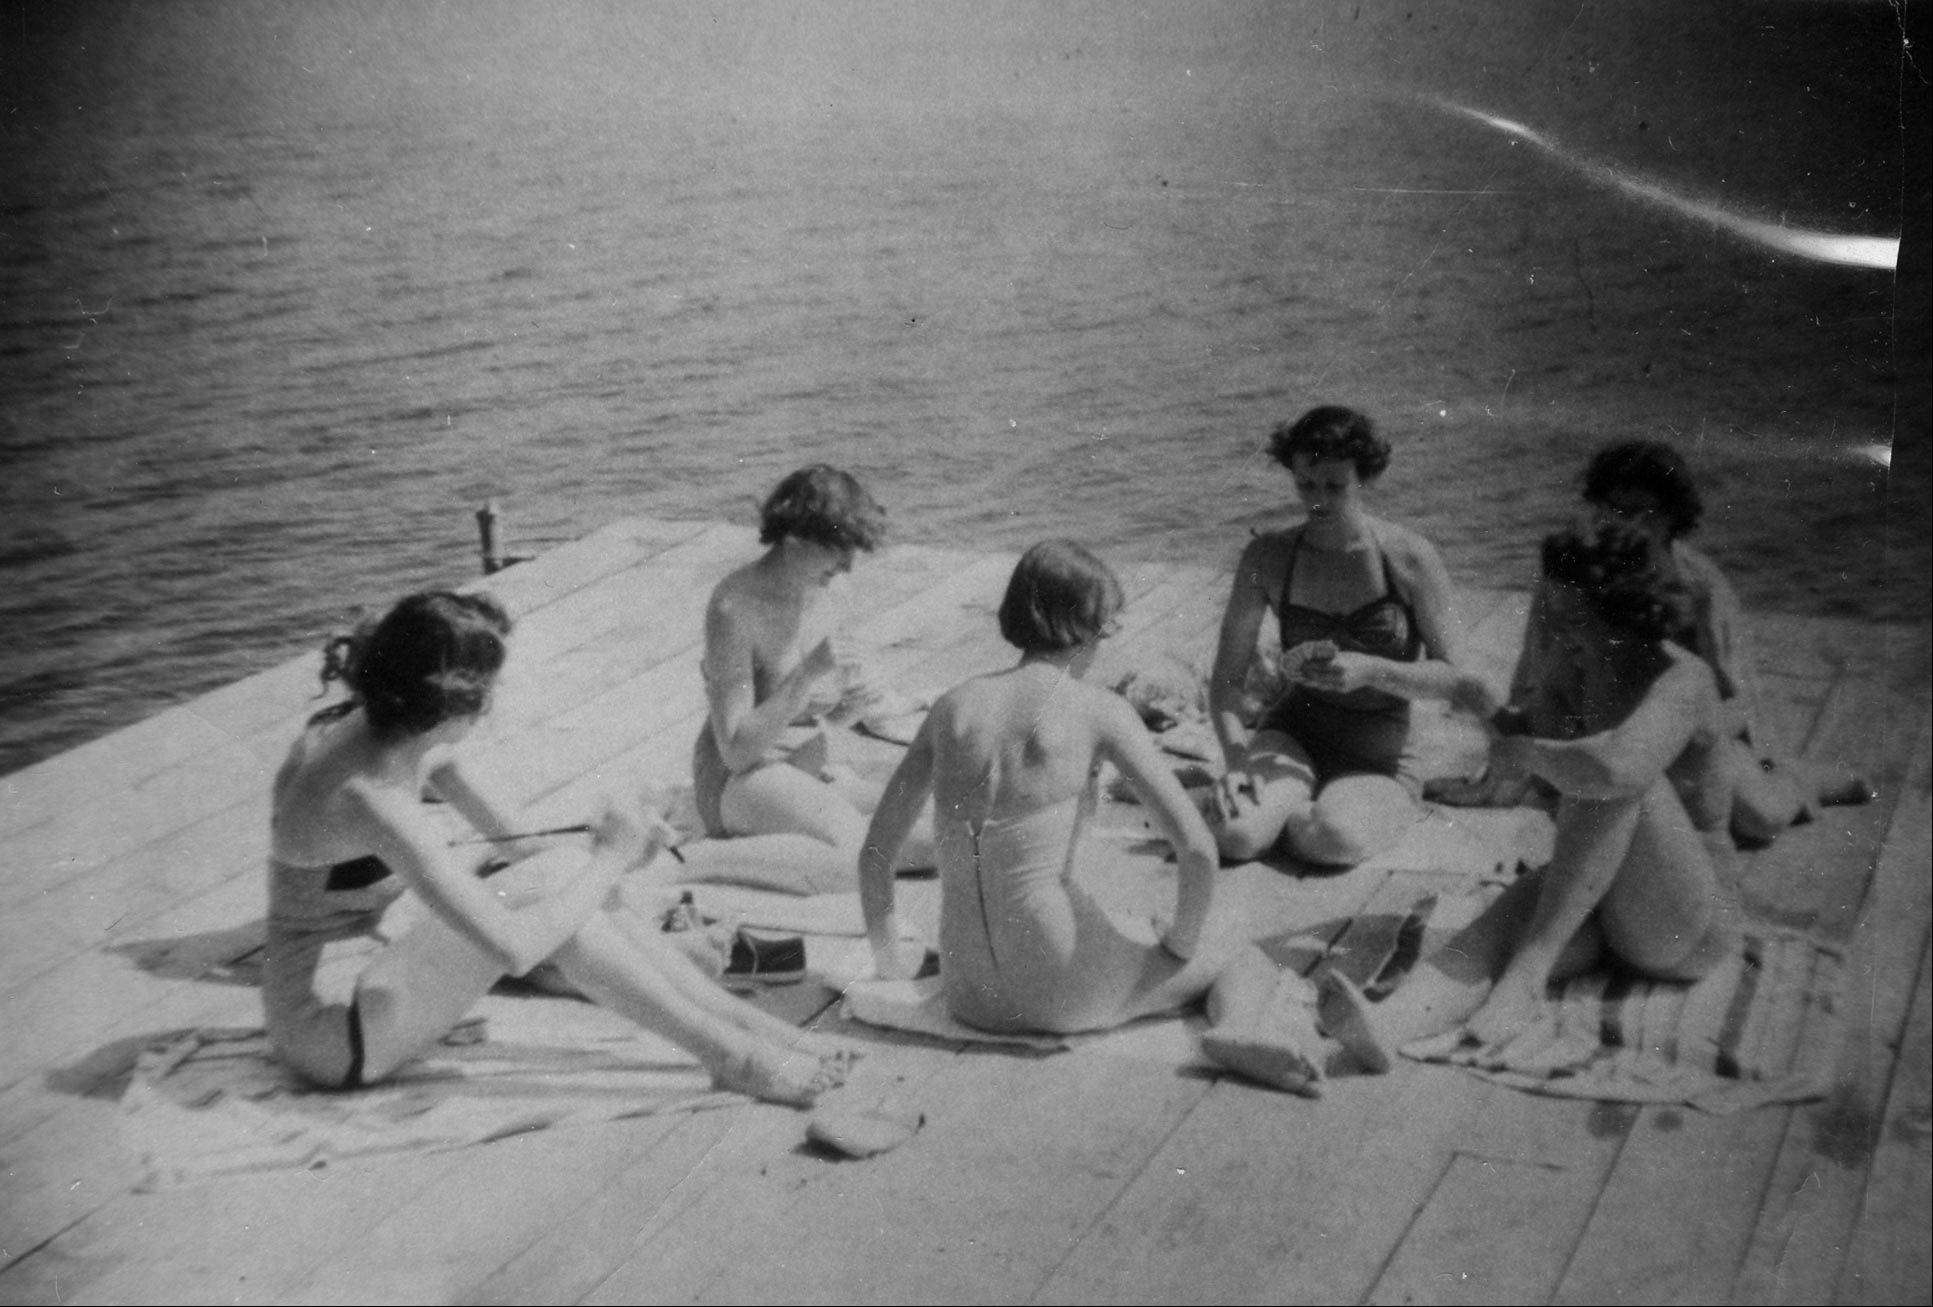 Moody�s Camp owner Lucile Seitz, third from right, enjoys a rare game of cards with several guests on the resort�s popular swim dock in 1957.